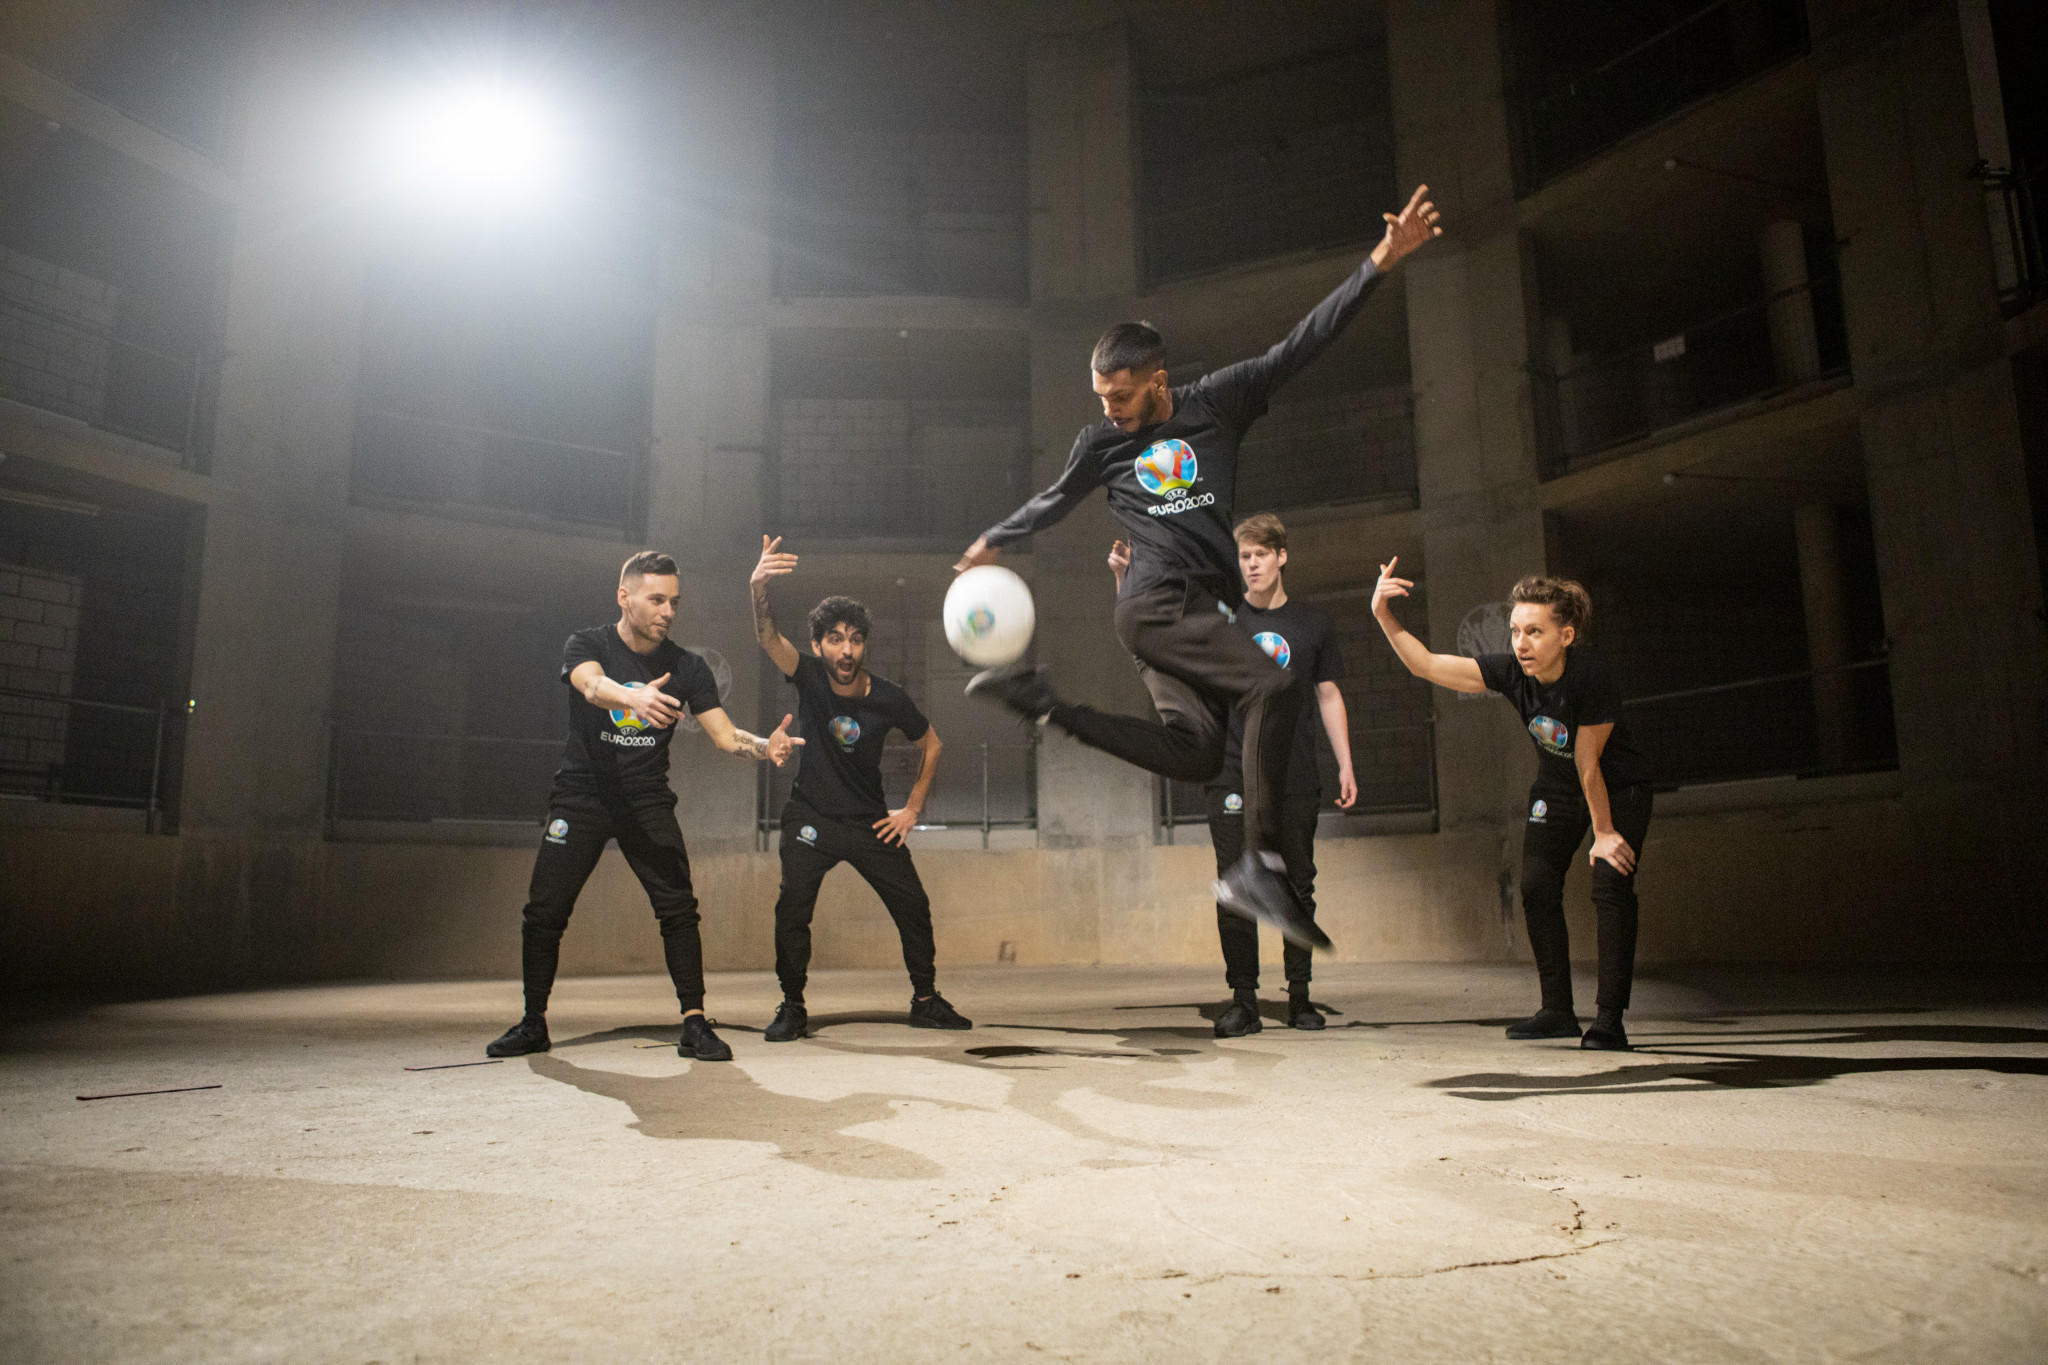 The video features several freestyle footballers performing their best tricks in a derelict building ©UEFA